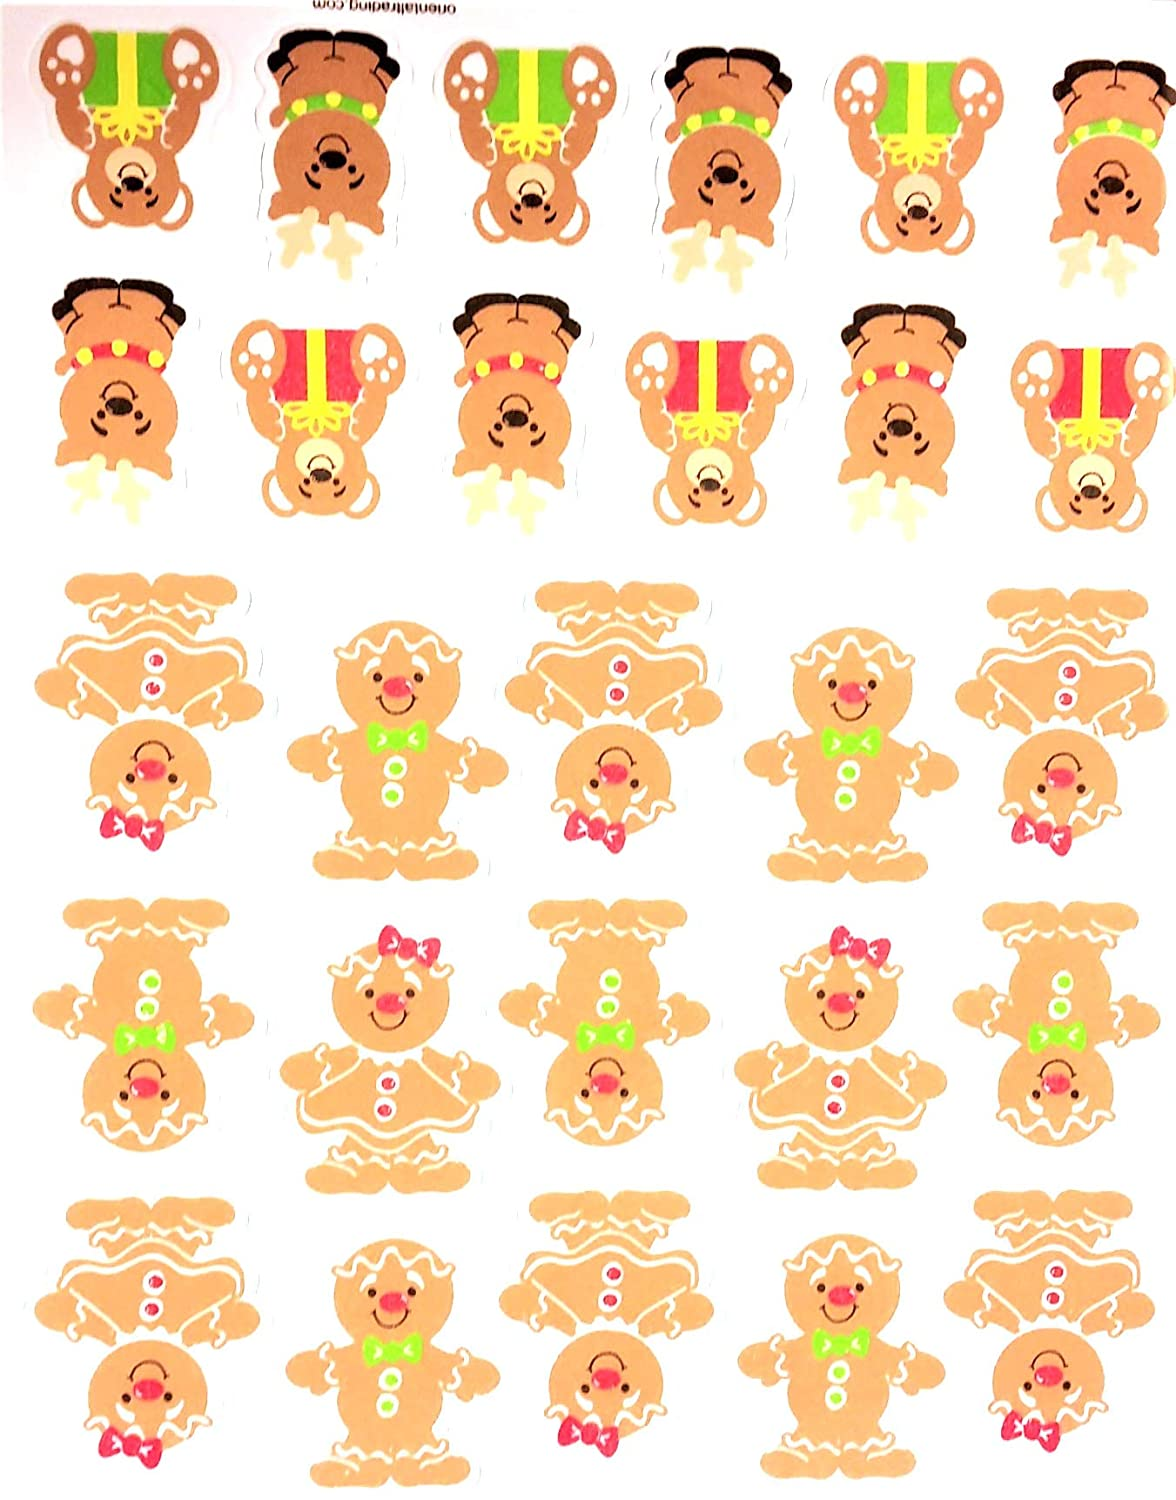 100+ Peel-Off Stickers Childrens Arts /& Crafts for Classroom Christmas Holidays Self-Adhesive Foam Stickers for Kids Stockings Shapes /& More! Xmas 2019 Bundle Presents Craft Supplies Santa